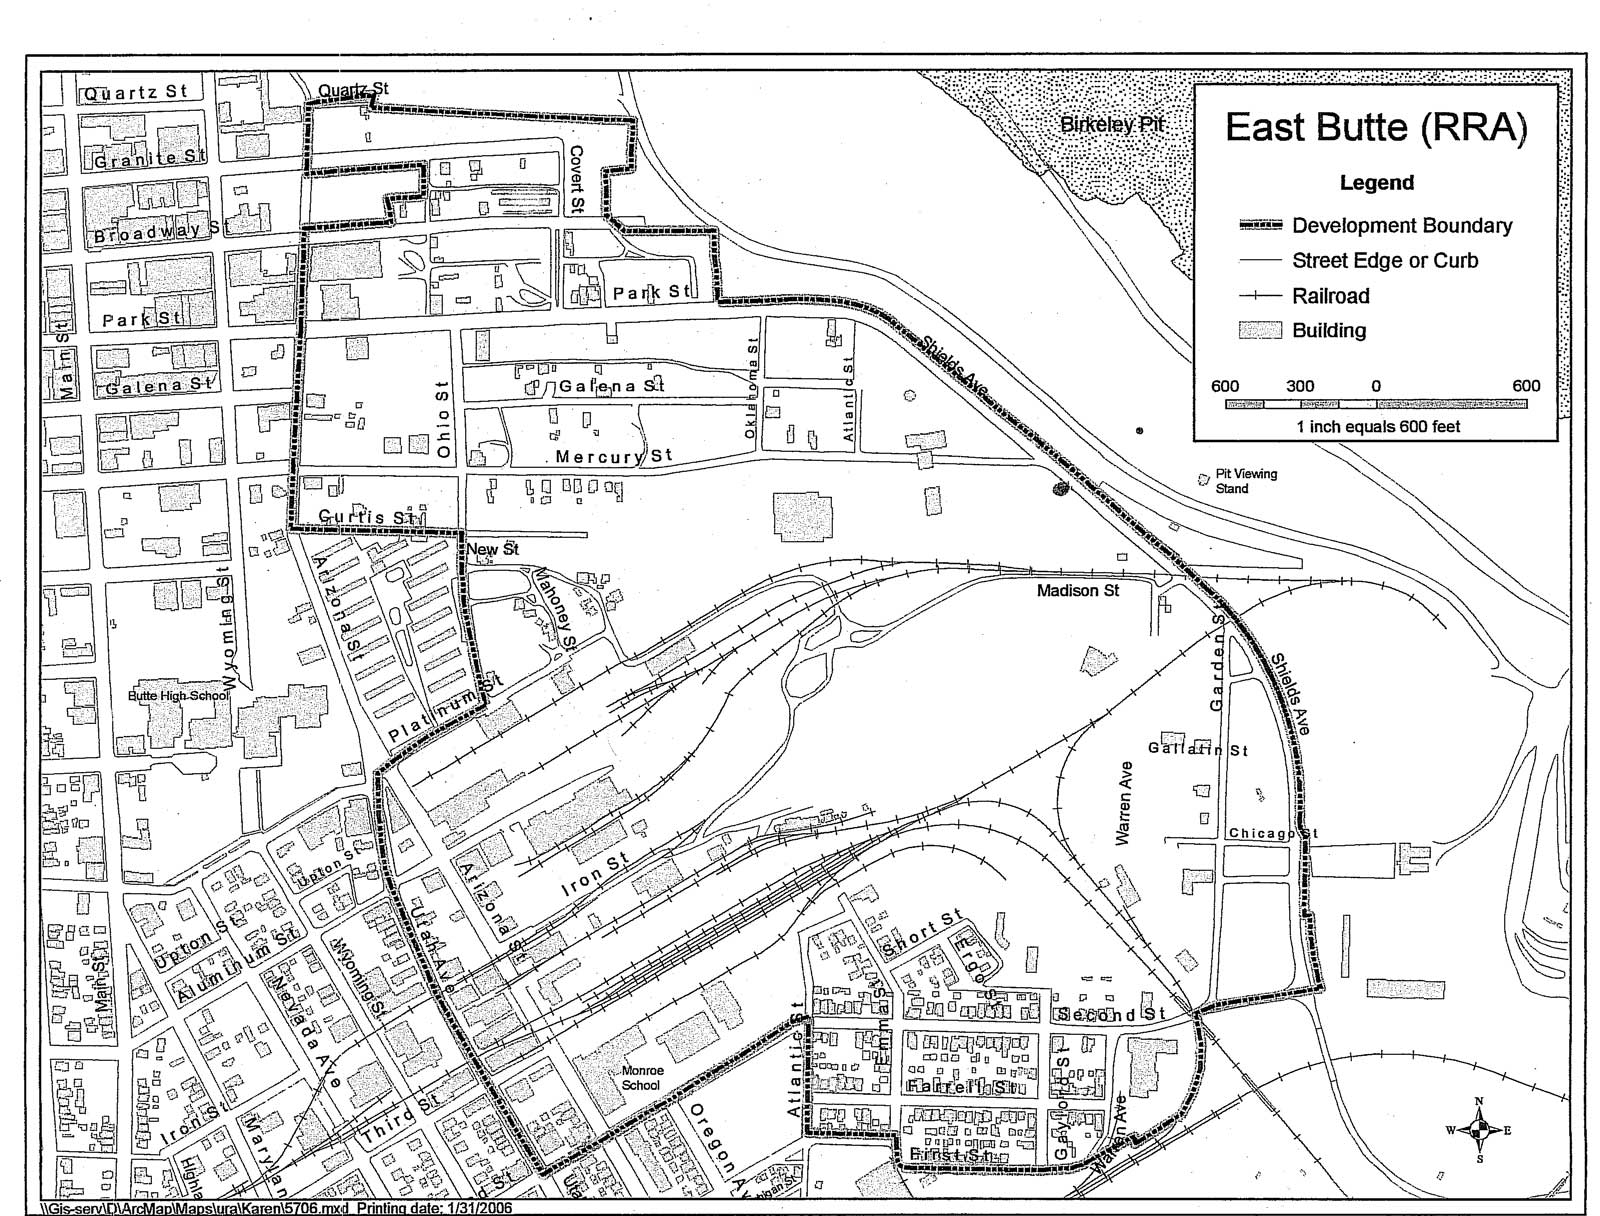 Map: East Butte Renovation & Rehabilitation Agency (RRA)